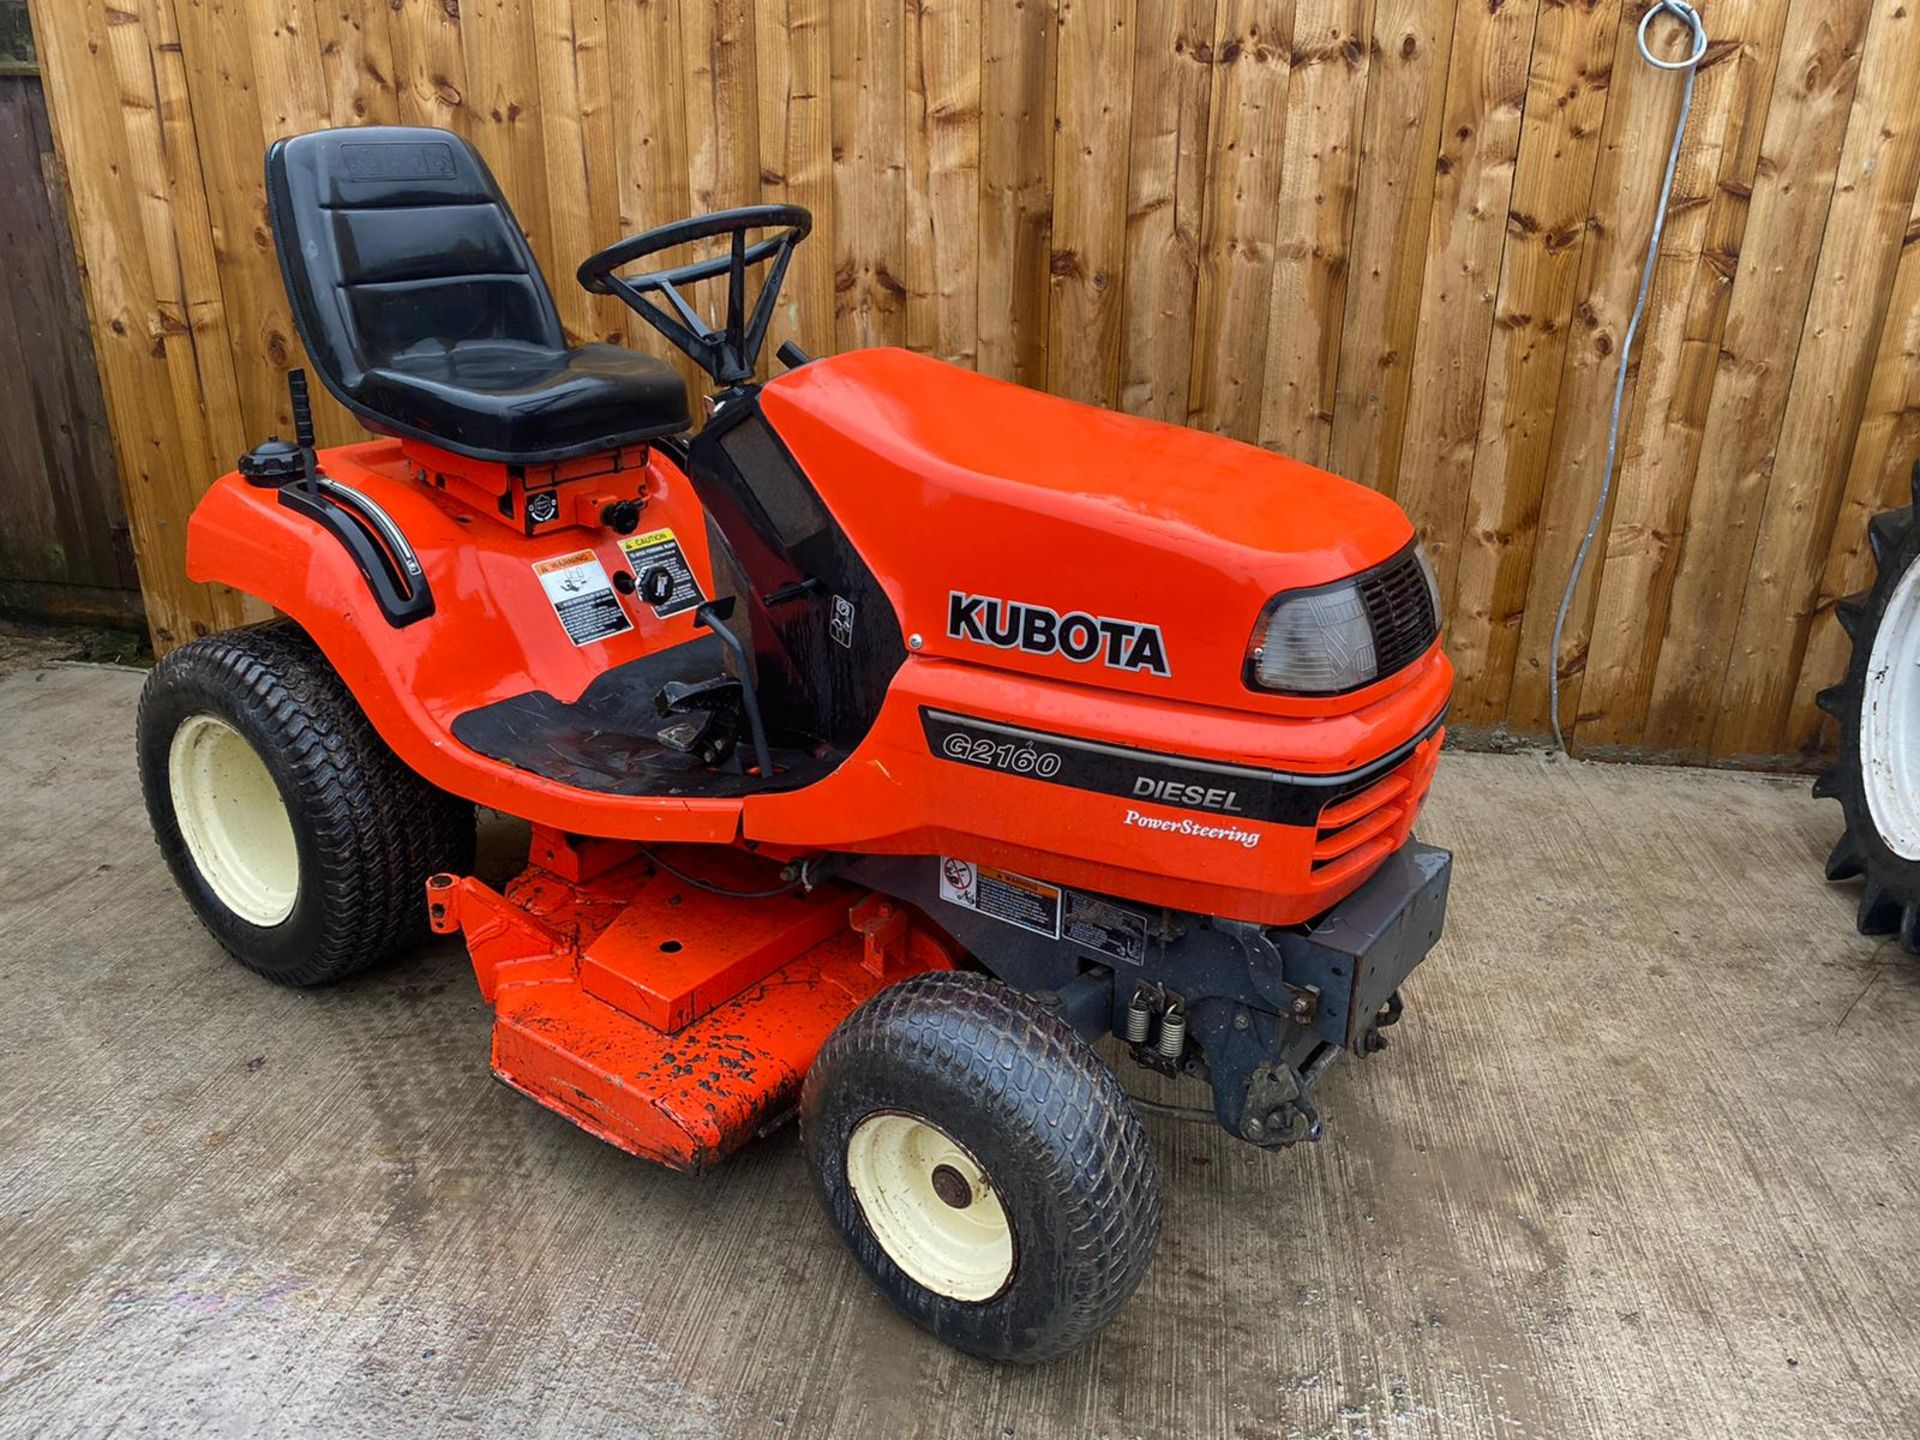 2009 KUBOTA G2160 DIESEL RIDE ON LAWN MOWER, IN EXCELLENT CONDITION *PLUS VAT*